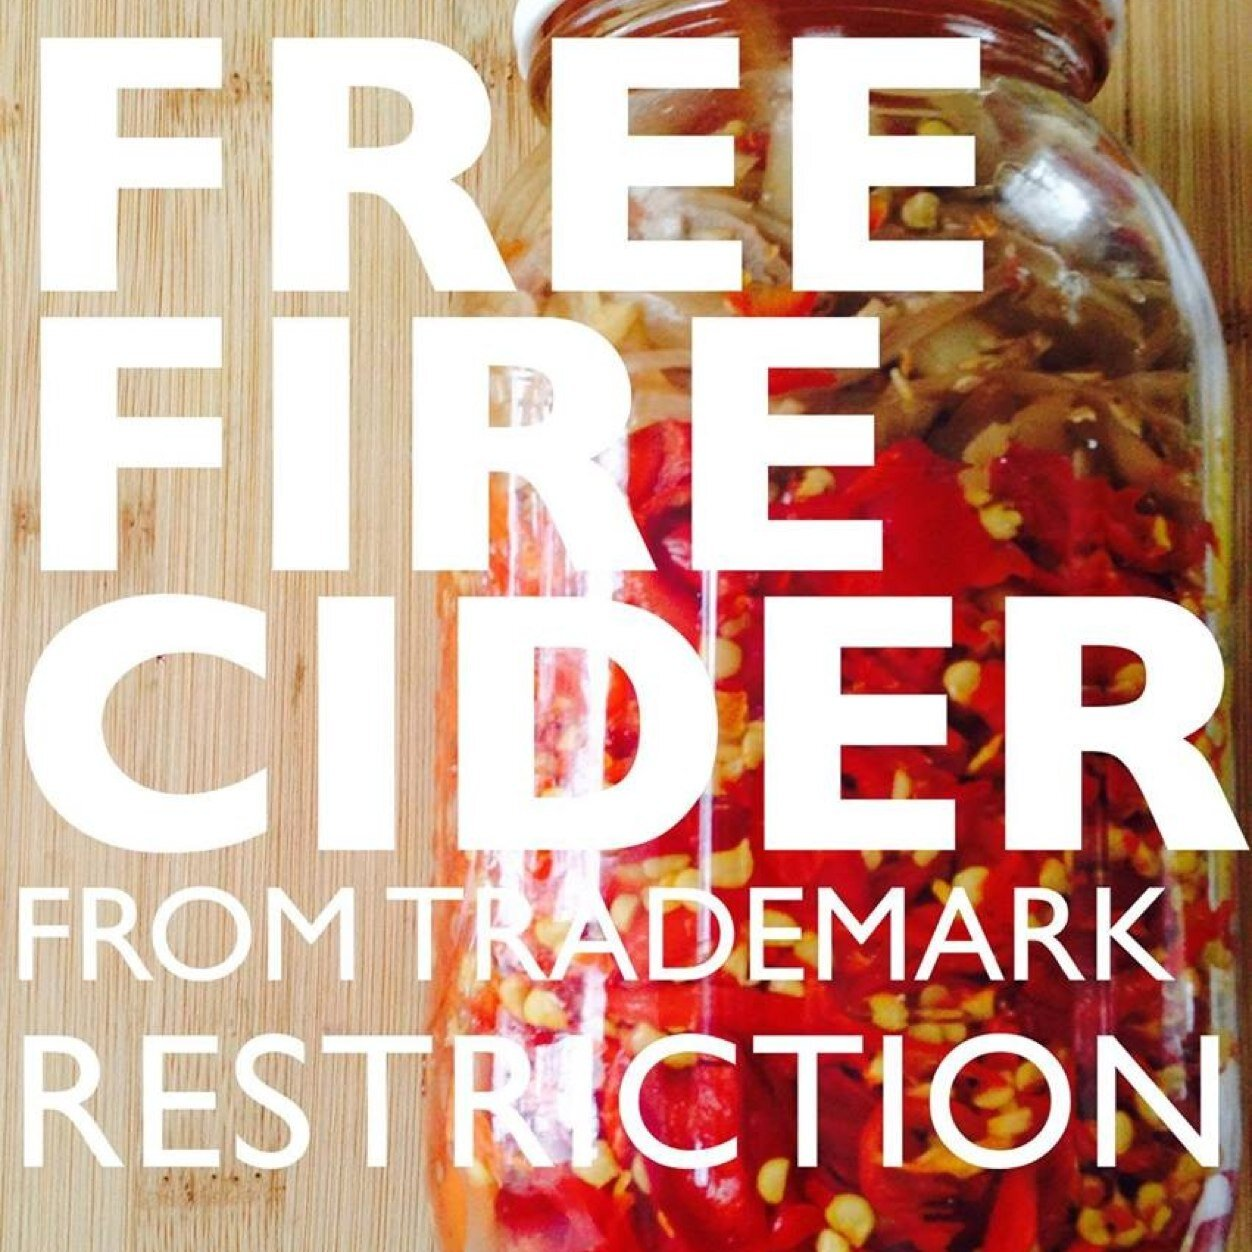 Free Fire Cider (@FreeFireCider) | Twitter